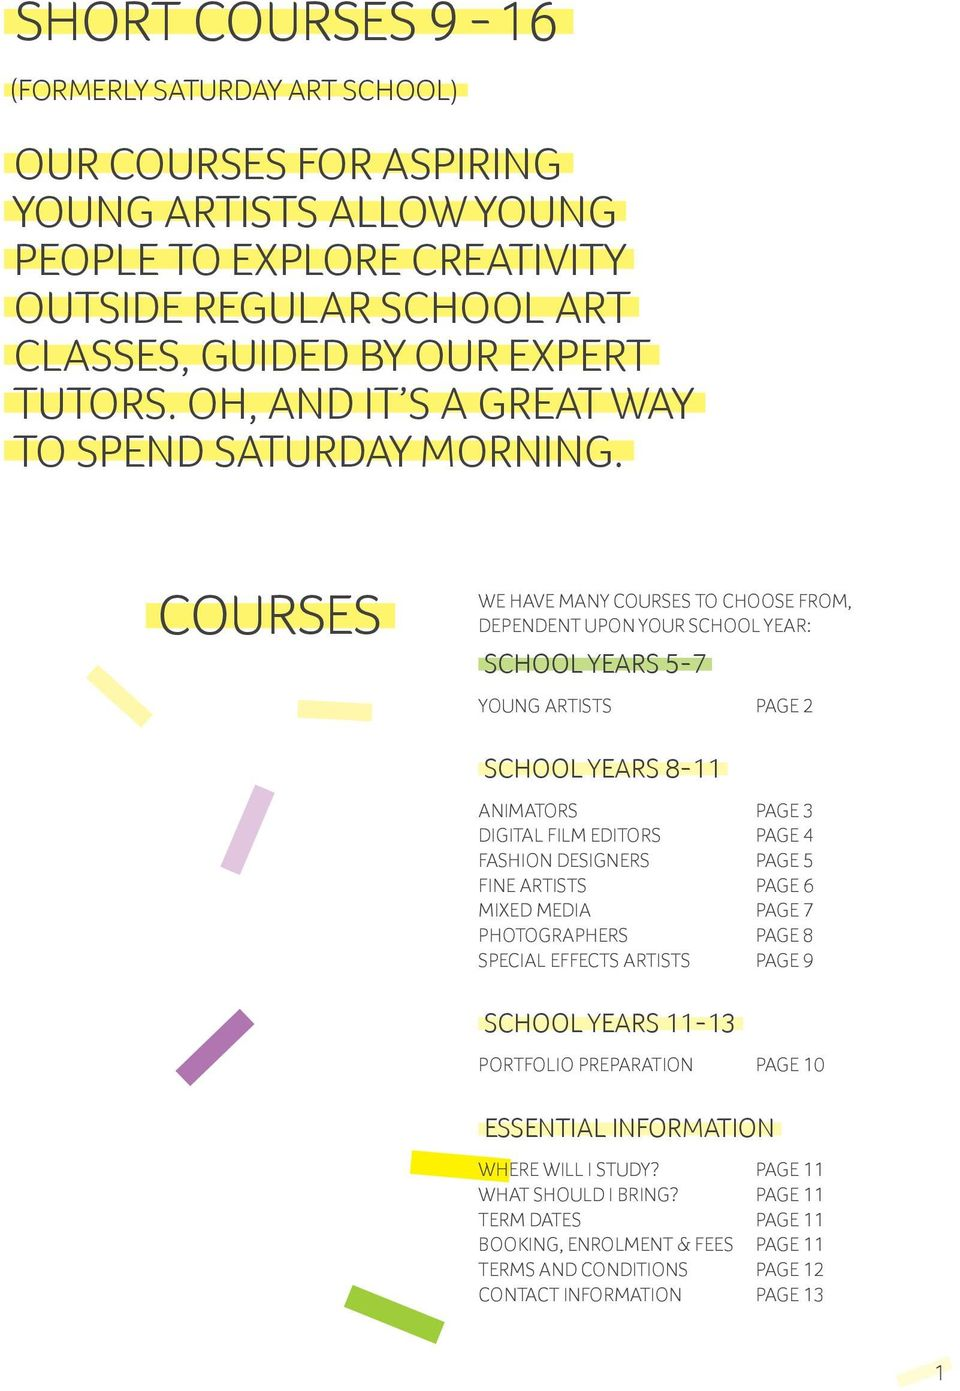 COURSES WE HAVE MANY COURSES TO CHOOSE FROM, DEPENDENT UPON YOUR SCHOOL YEAR: SCHOOL YEARS 5-7 YOUNG ARTISTS PAGE 2 SCHOOL YEARS 8-11 ANIMATORS PAGE 3 DIGITAL FILM EDITORS PAGE 4 FASHION